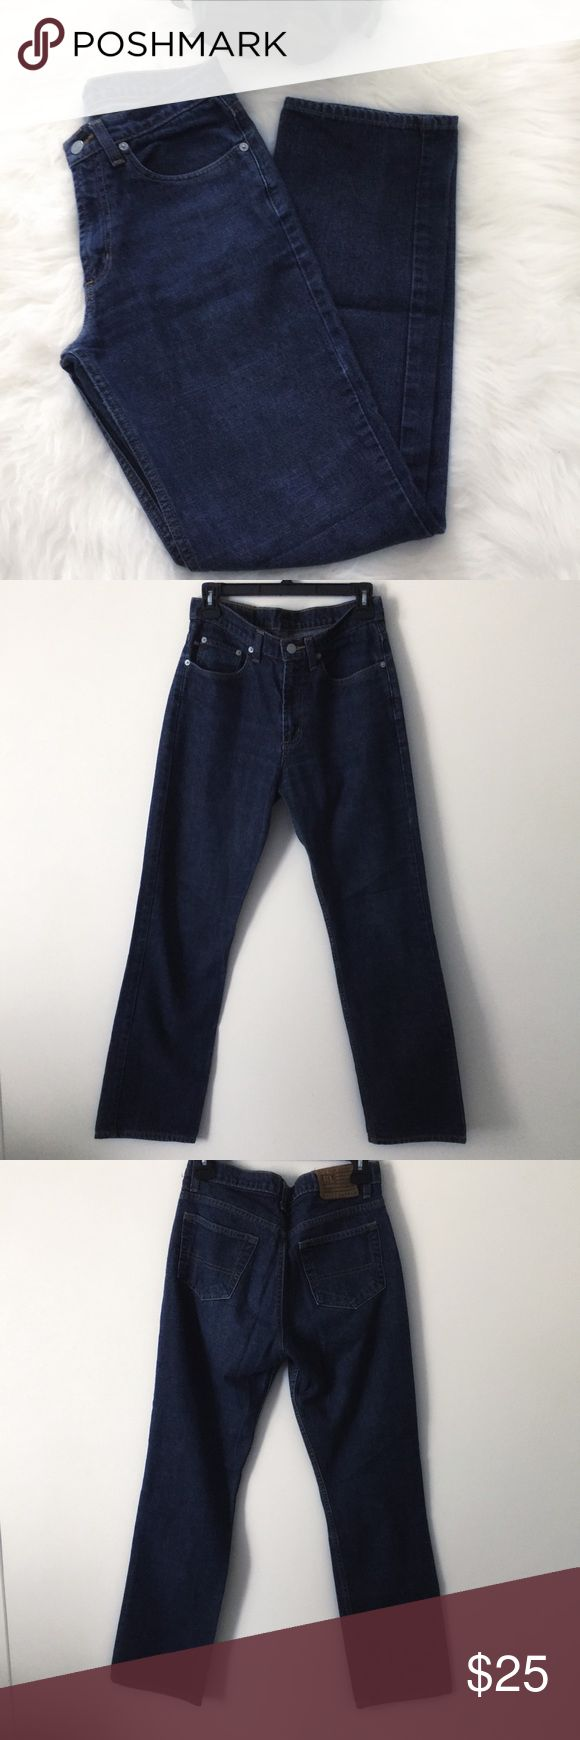 Ralph Lauren Polo Jeans Bootcut Ralph Lauren Polo Jeans inseam:30.5 inches Length:41 inches waist flat 14 inches bootcut. No known or visible flaws. Mid rise. Polo by Ralph Lauren Jeans Boot Cut